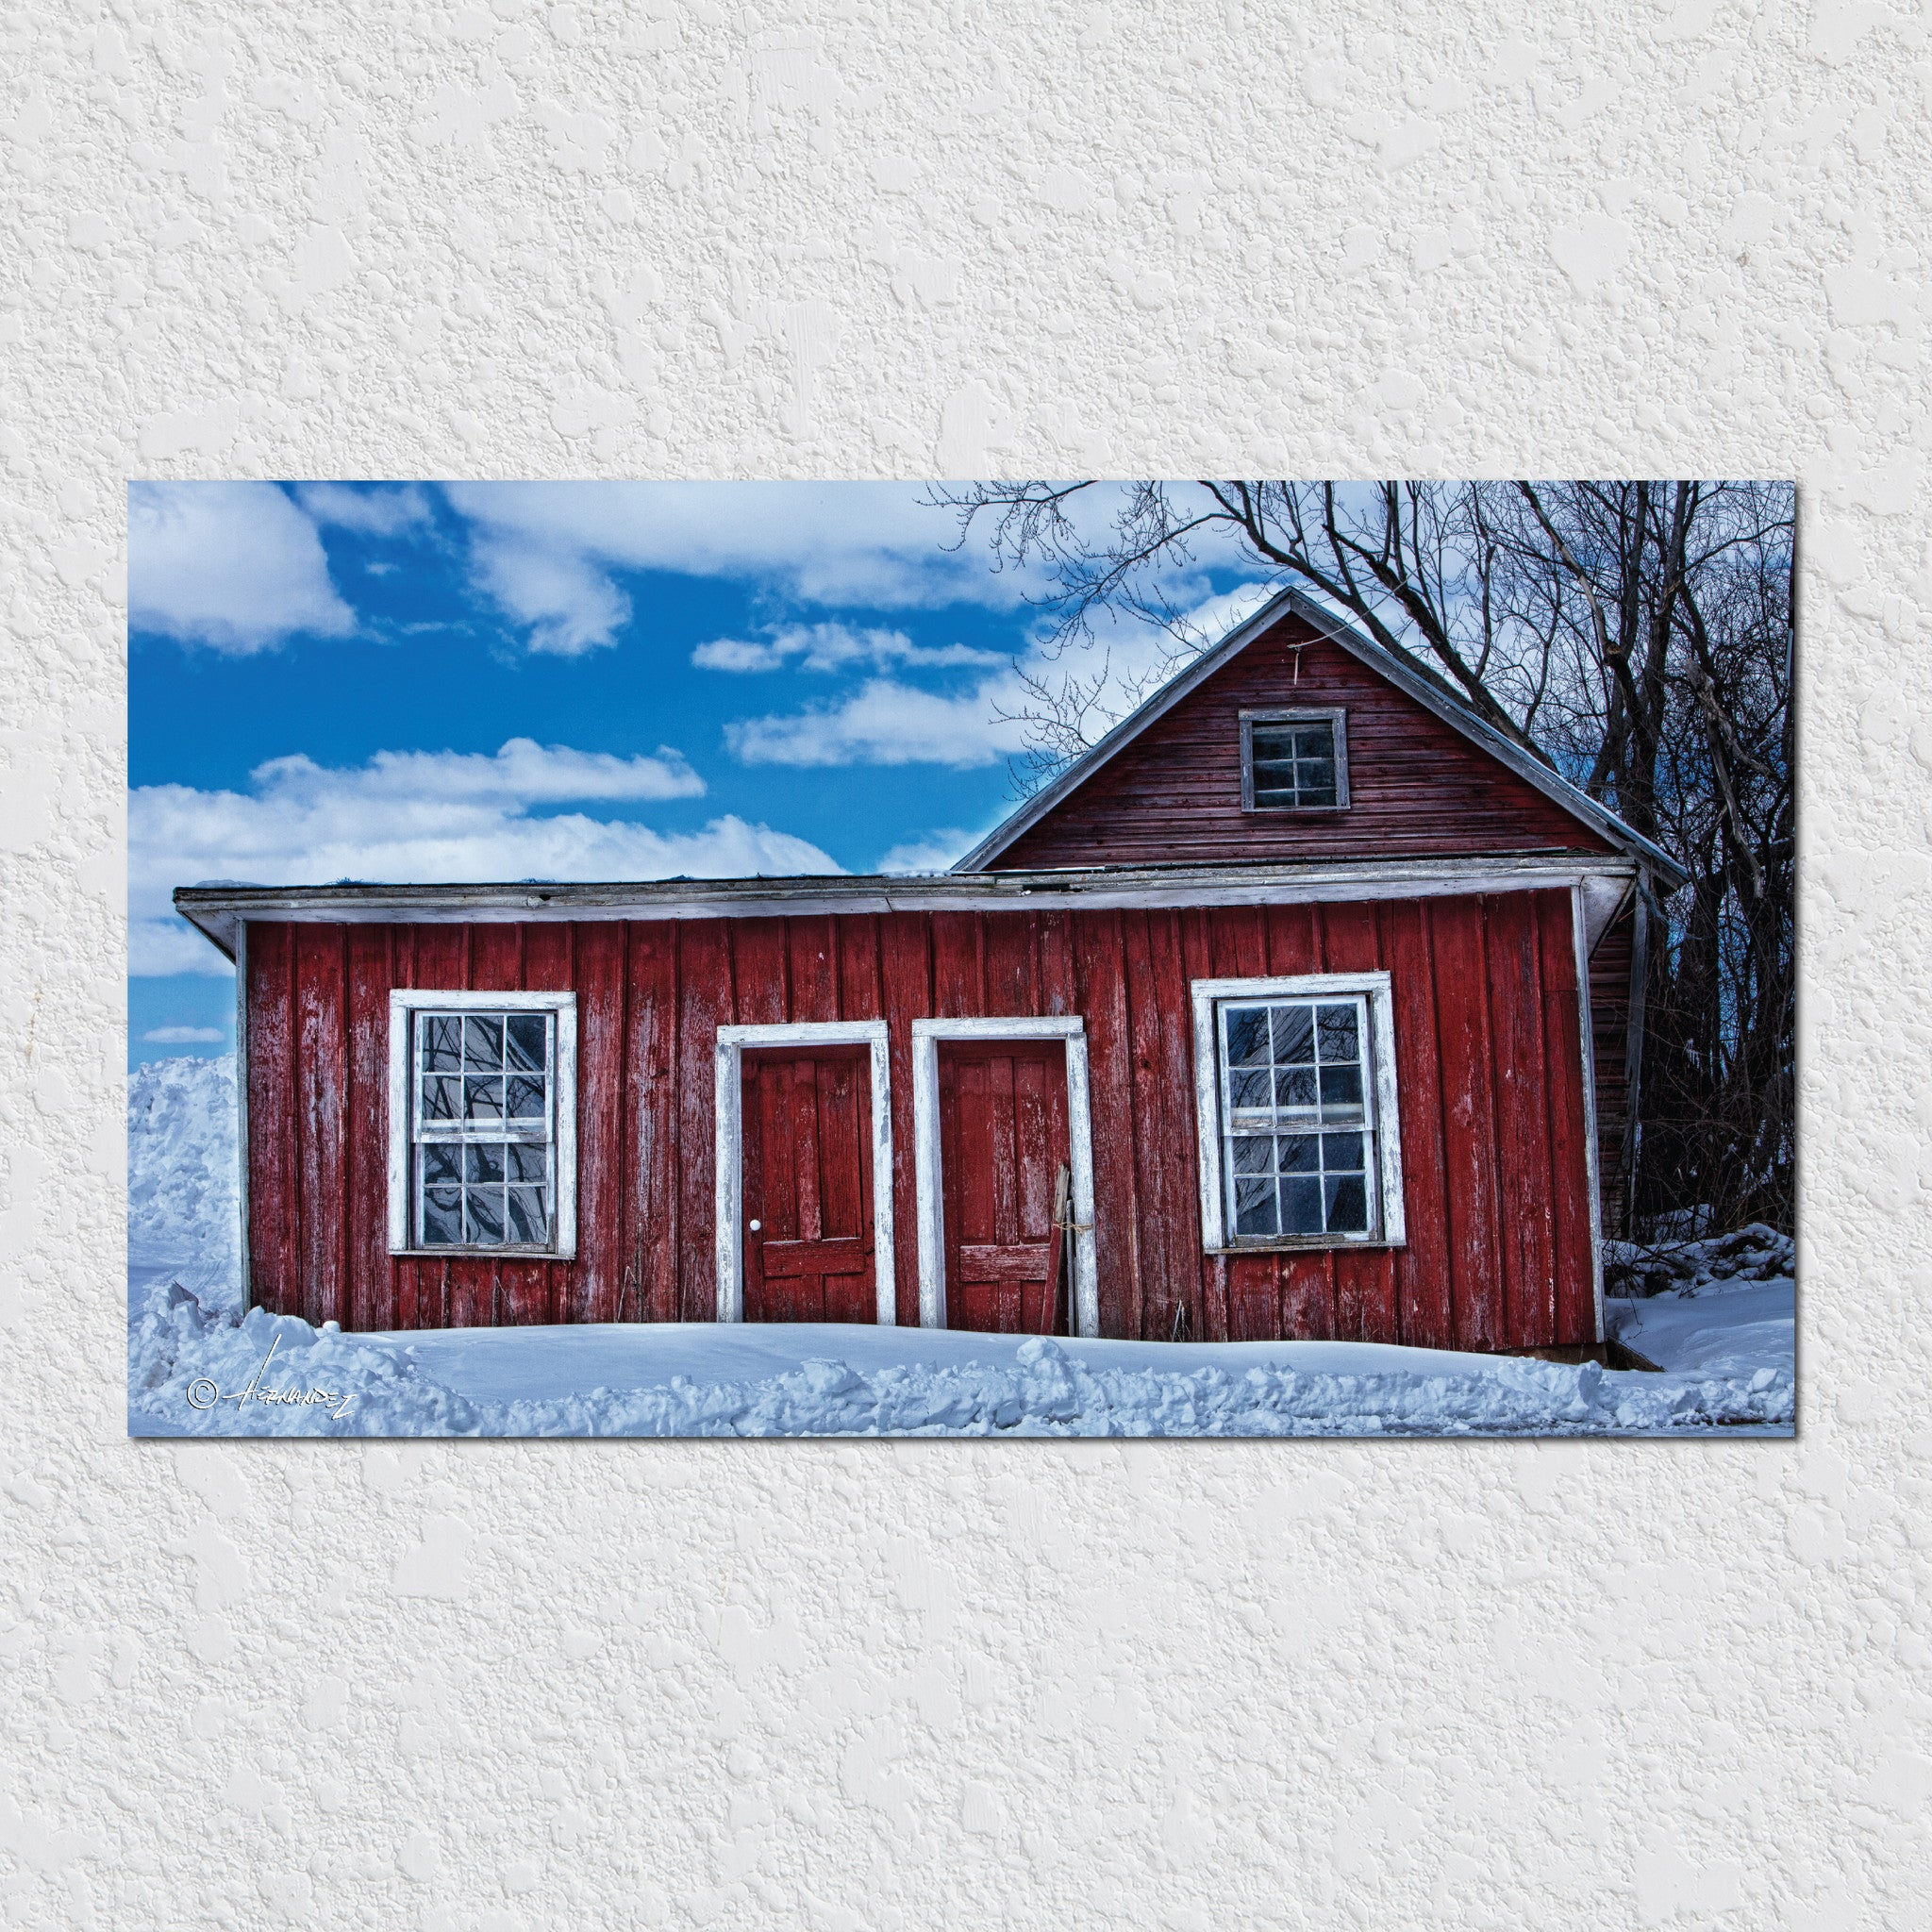 Red Shed In Snow by Peter Hernandez